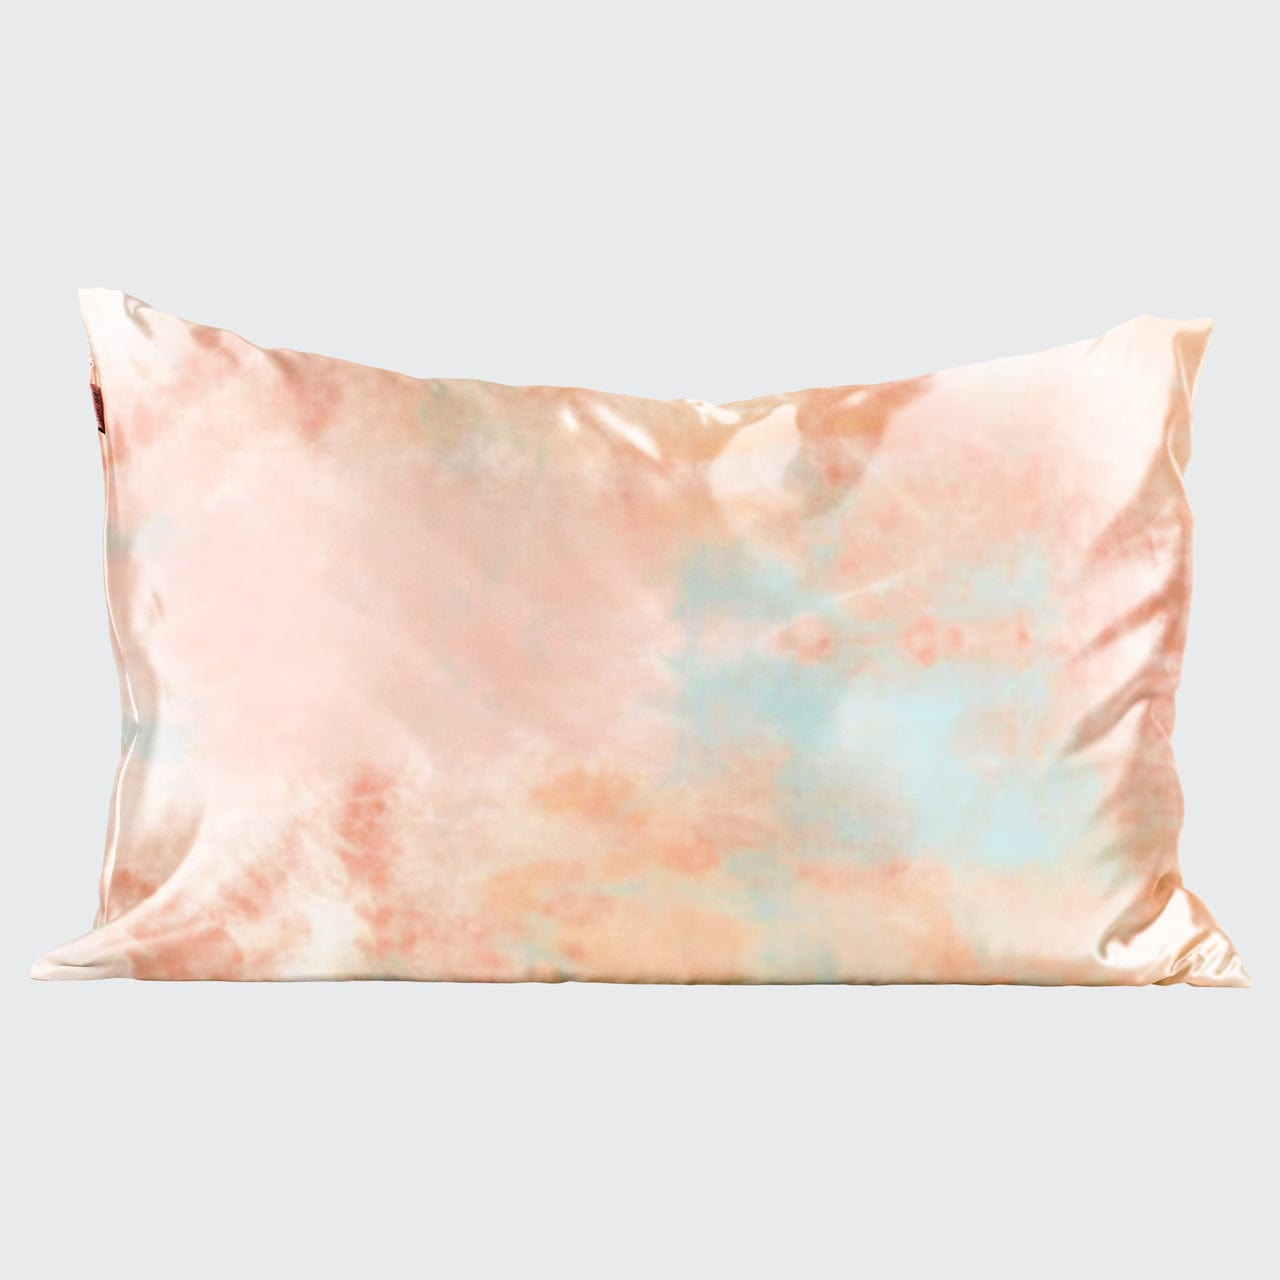 Satin Pillowcase - Sunset Tie Dye